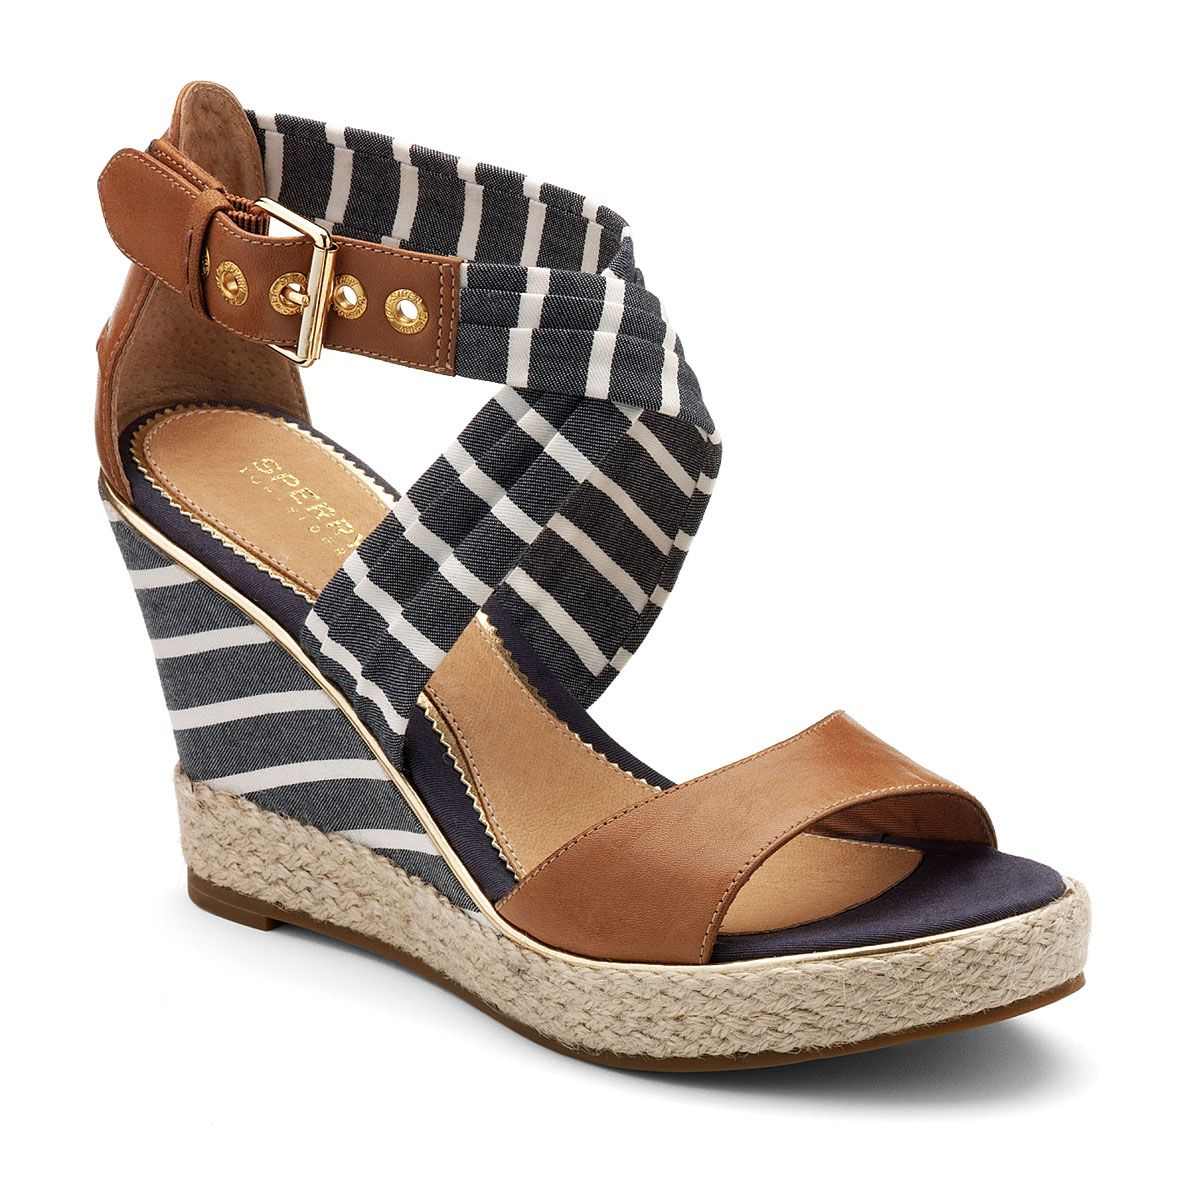 Sperry..some days i wish it were practical for me to rock a cute wedge/heel/you name it.. #6footproblems